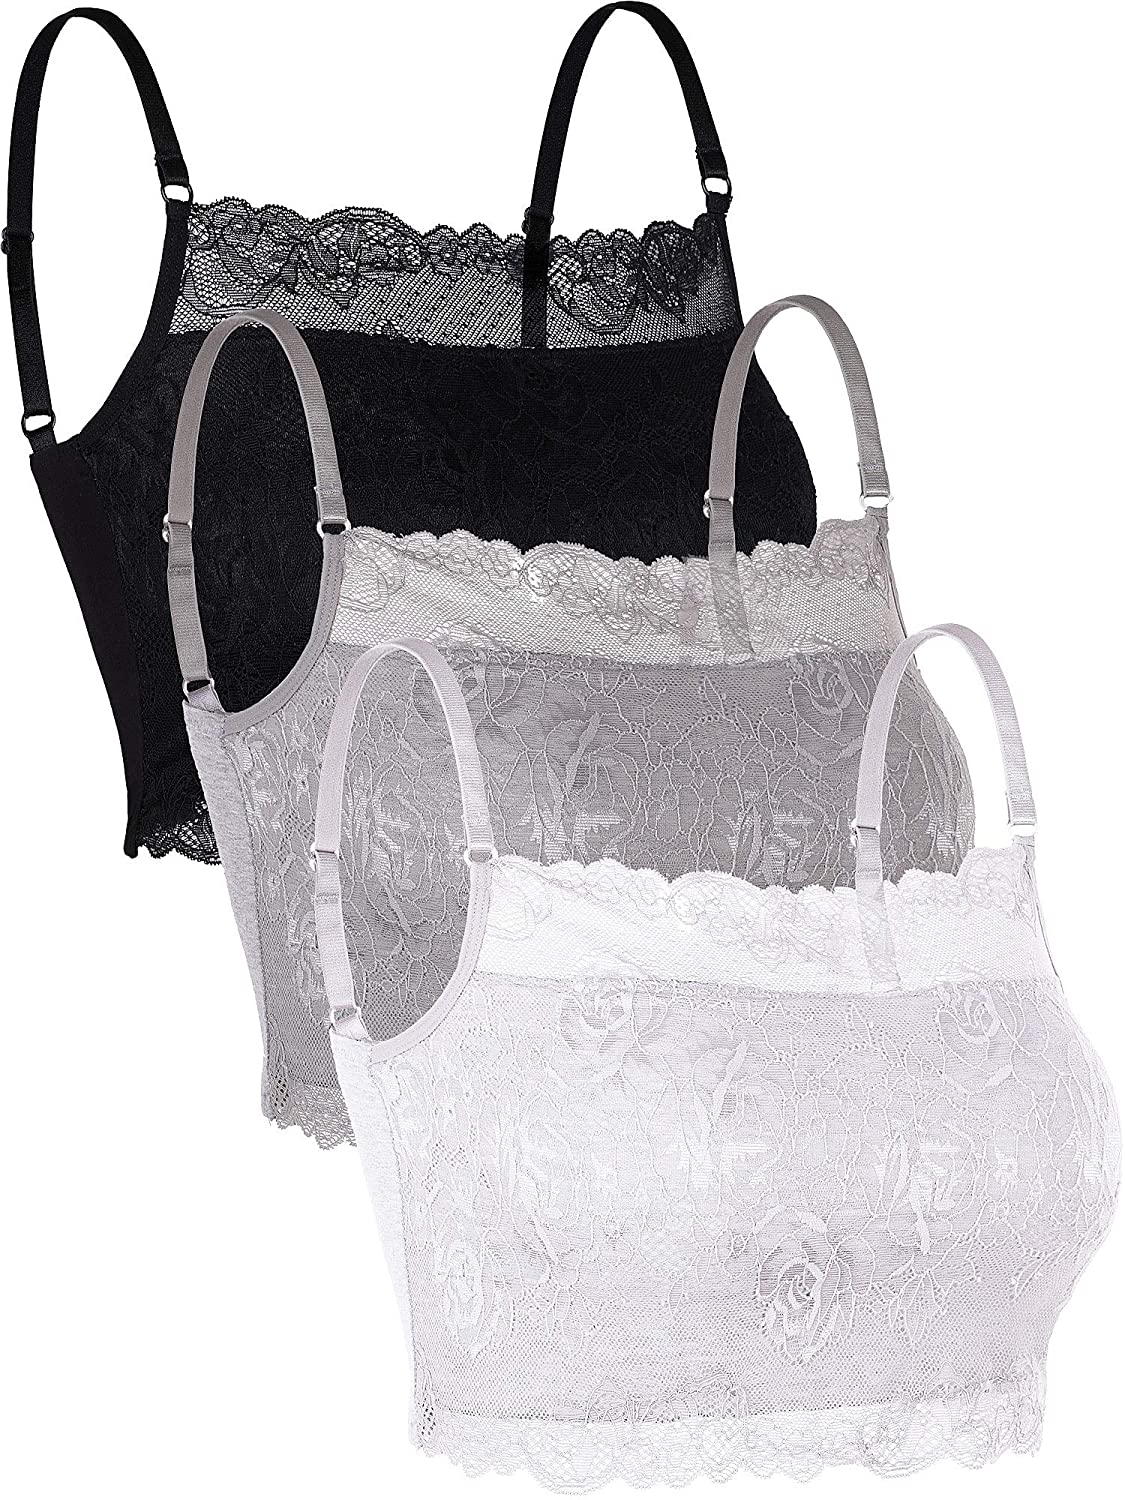 Skylety 3 Pieces Lace Cami Half Lace Camisole Neck Lace Bralette Top for Women Girls